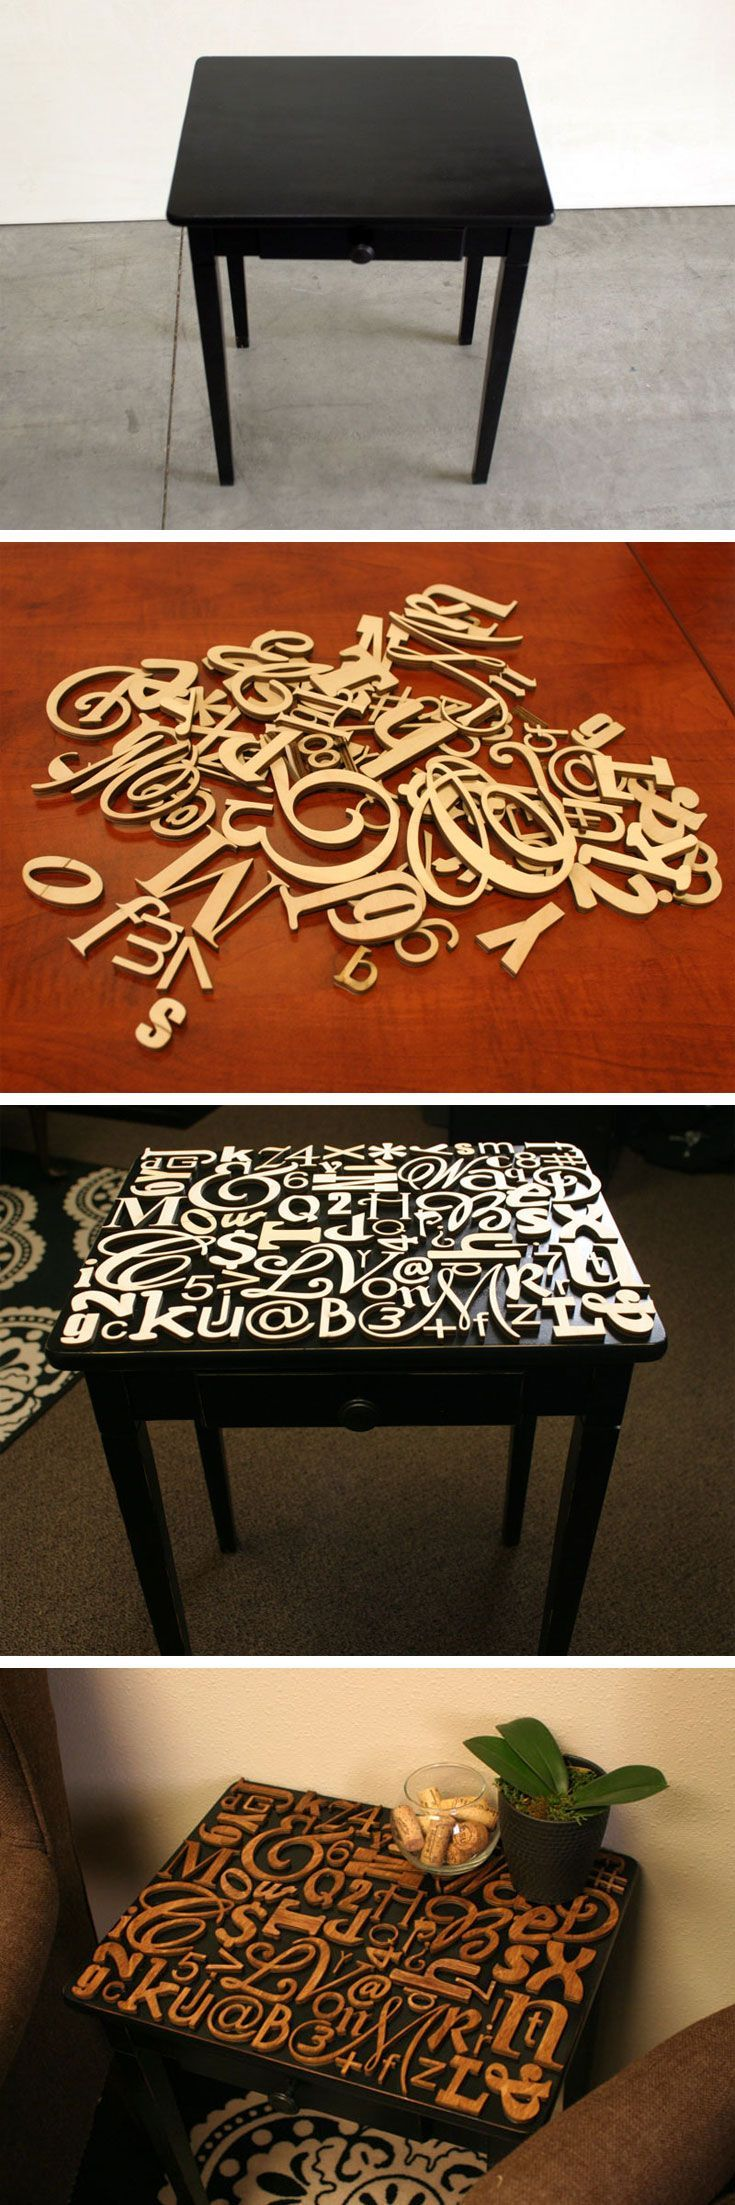 Amazing lettered tabletop